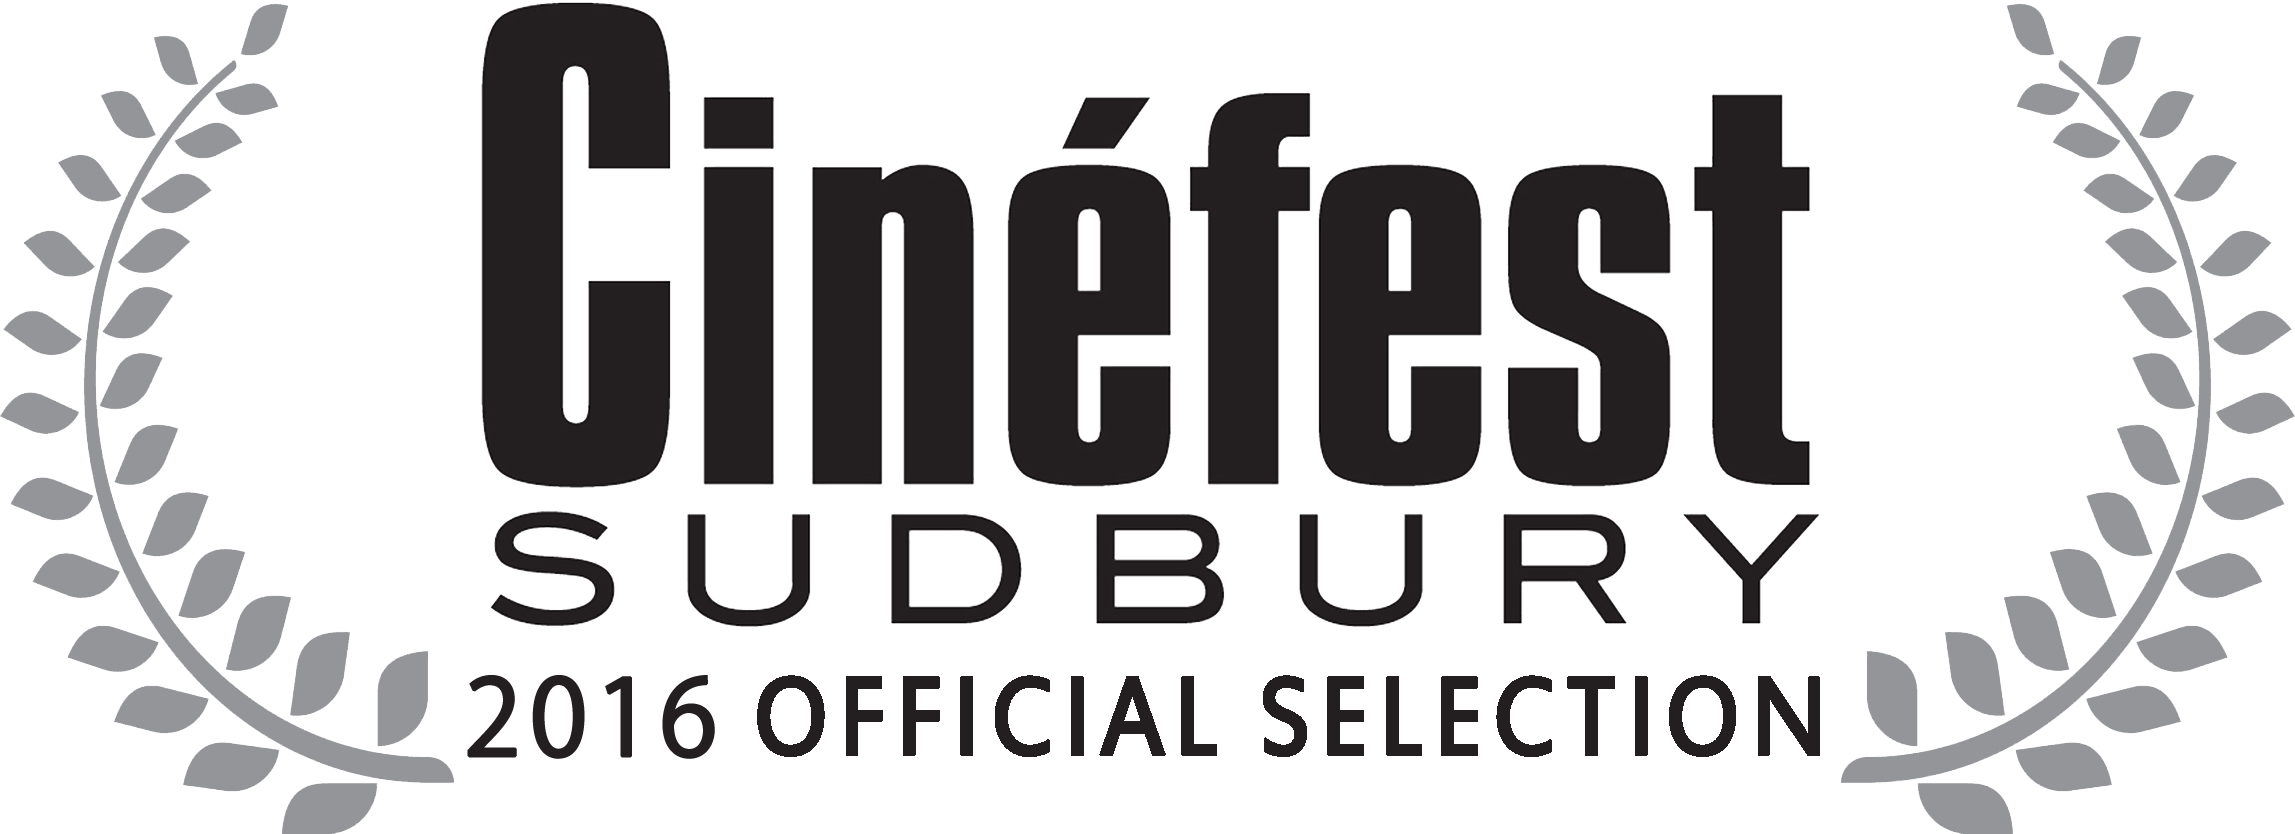 2016 Official Cinefest Sudbury Laurels.png